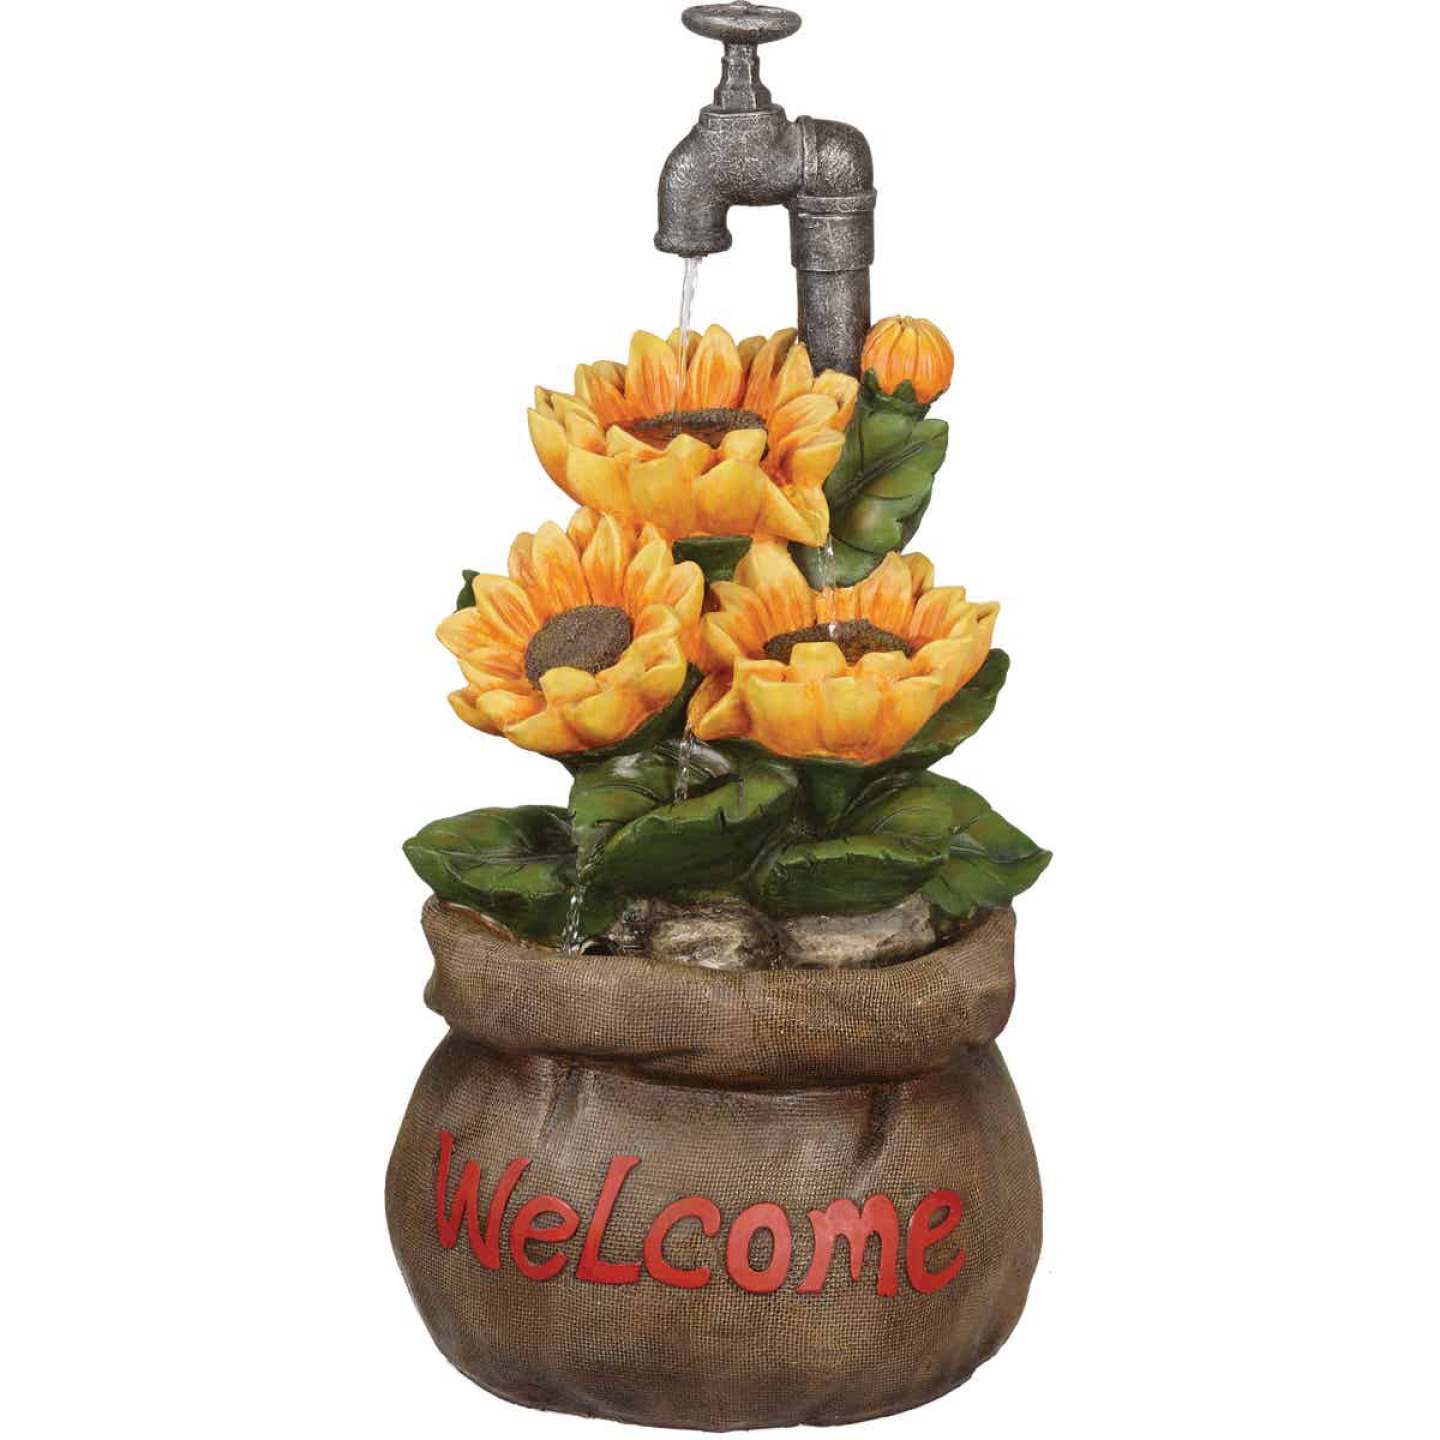 Best Garden 13 In. W. x 28 In. H. x 13 In. L. Polyresin Sunflower Fountain Image 1